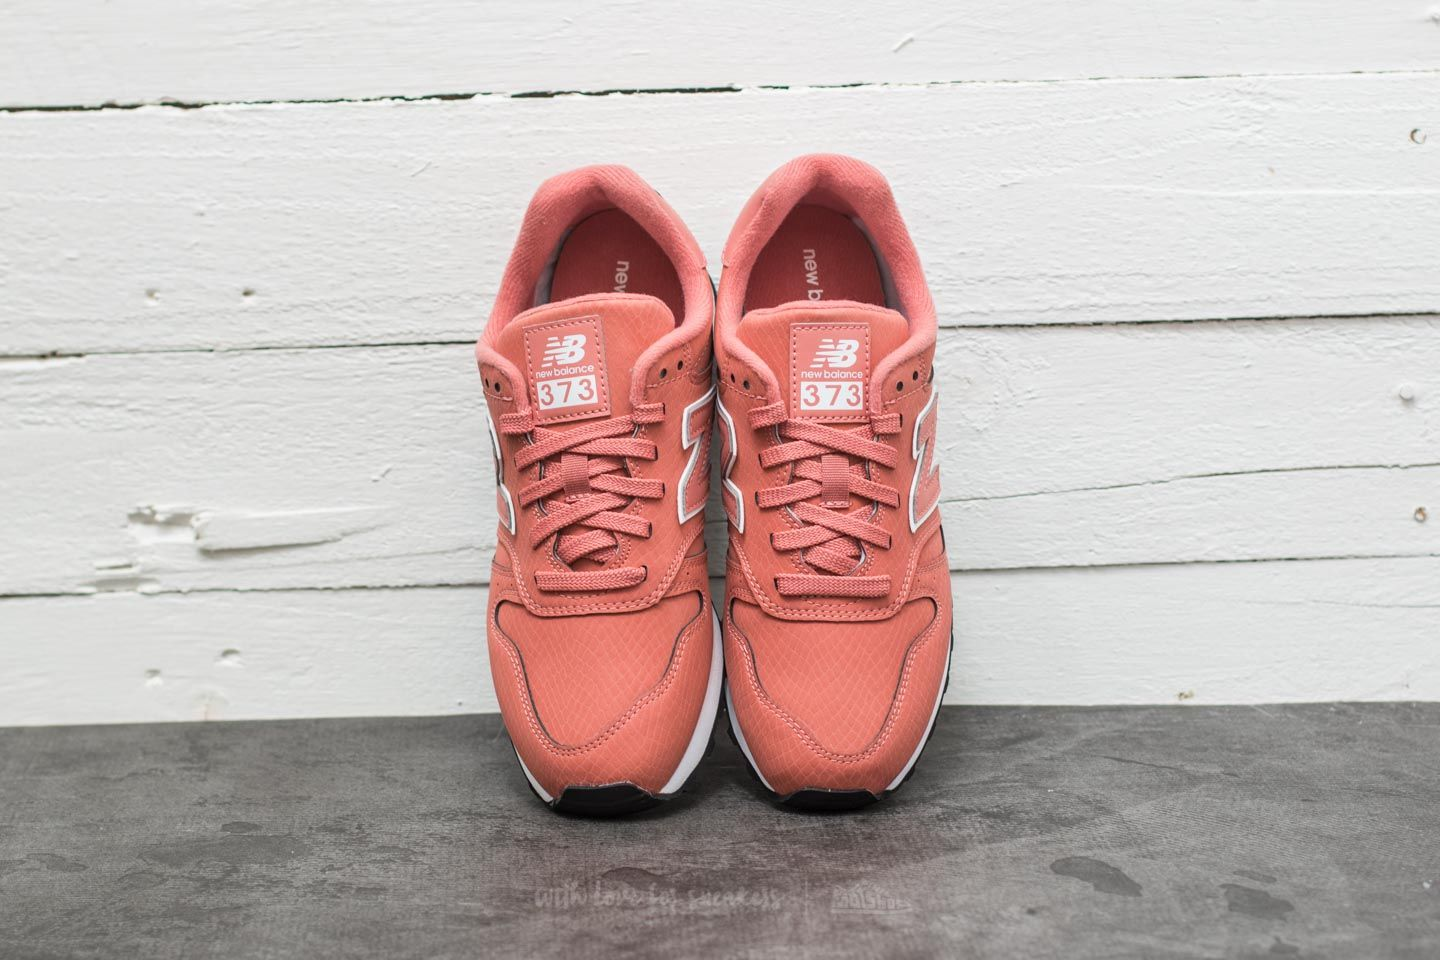 reputable site 89a82 909a2 New Balance 373 Red | Footshop